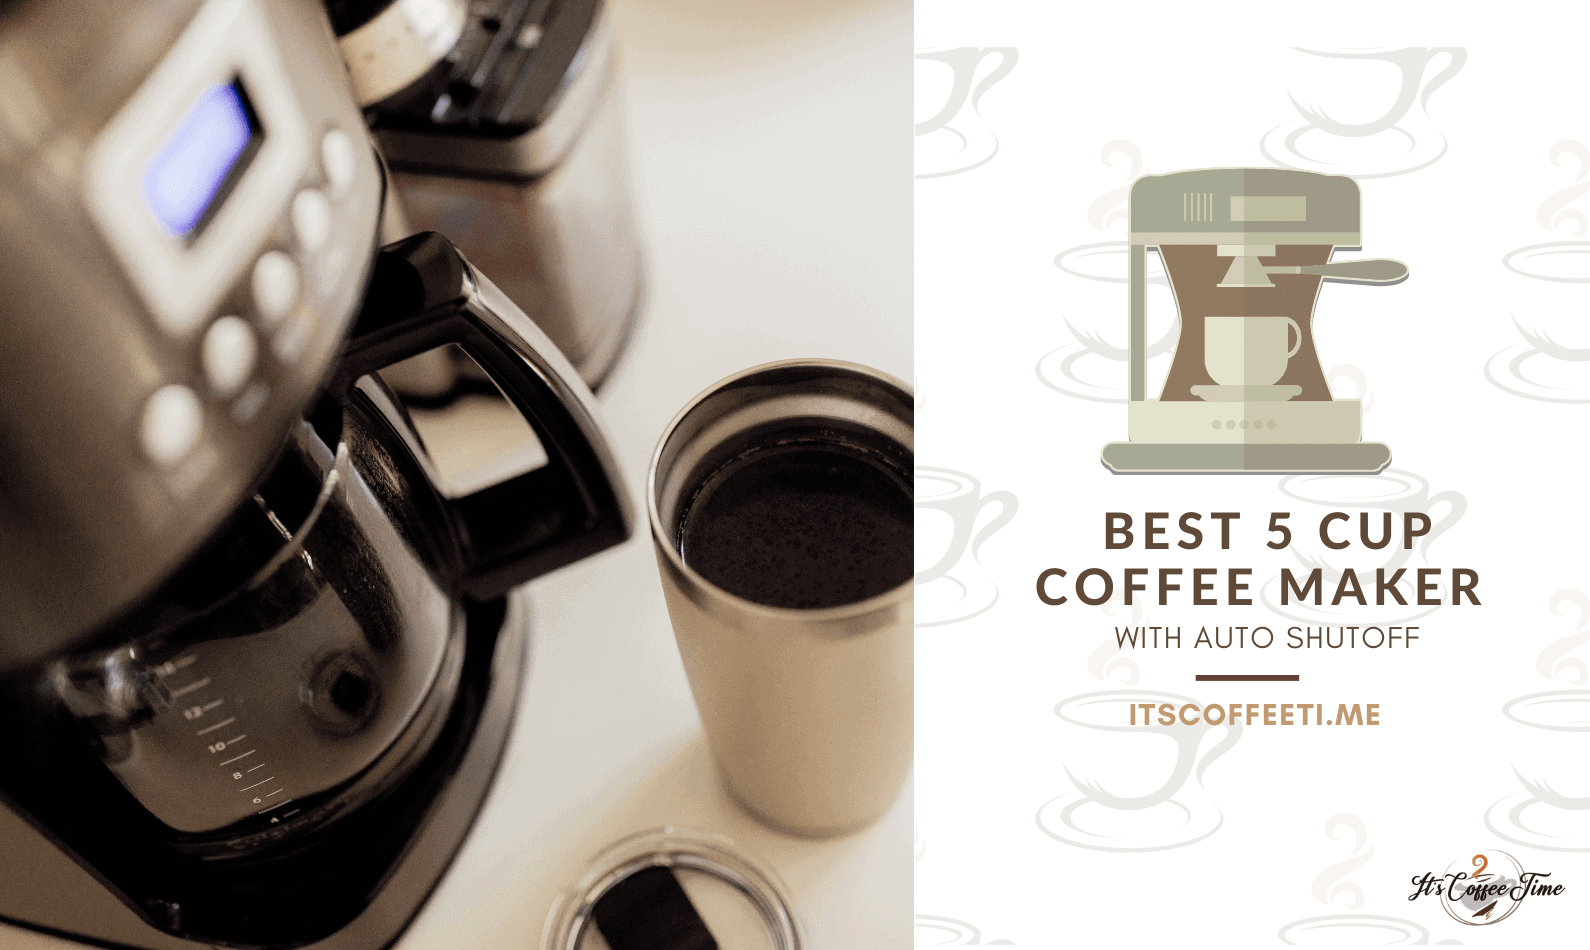 Best 5 Cup Coffee Maker with Auto Shutoff